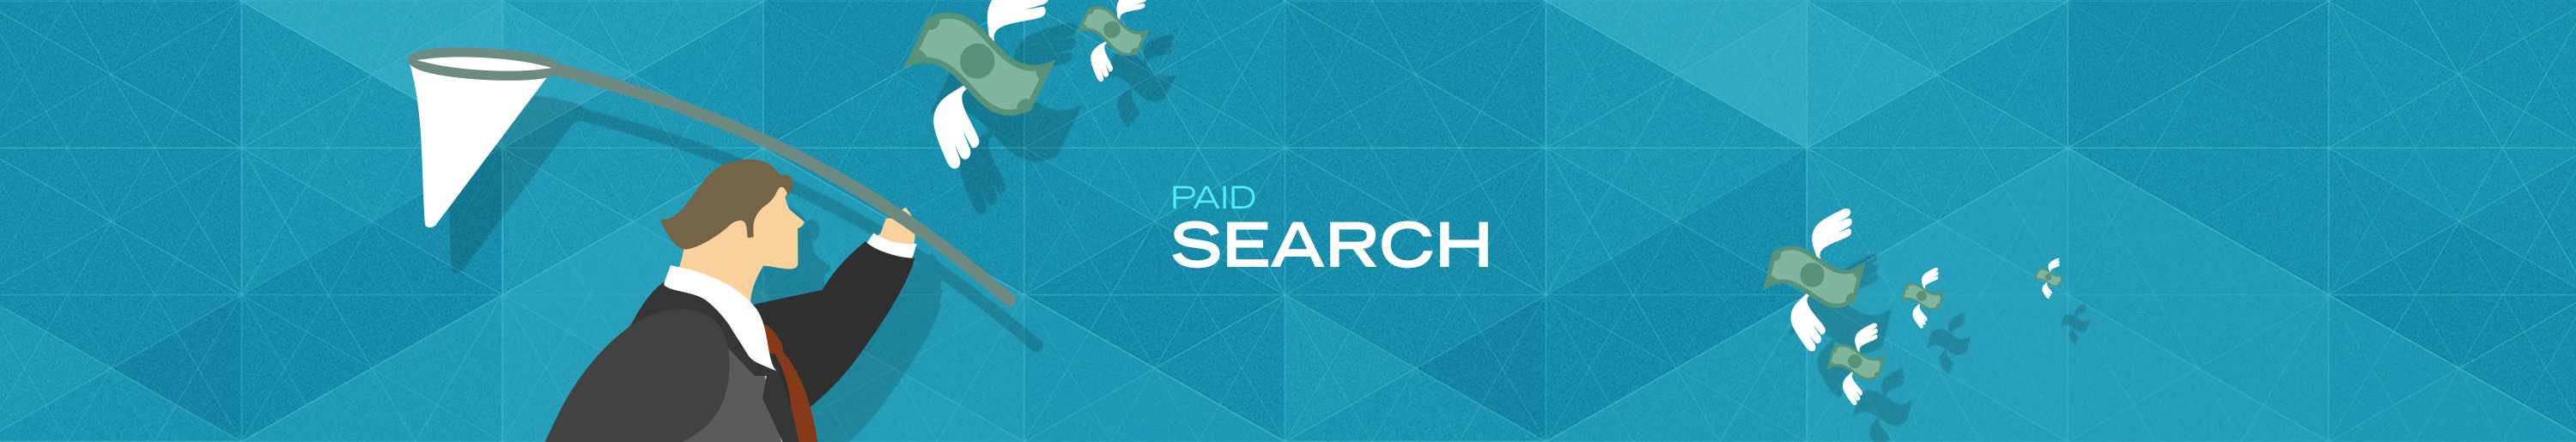 paid_search_header1